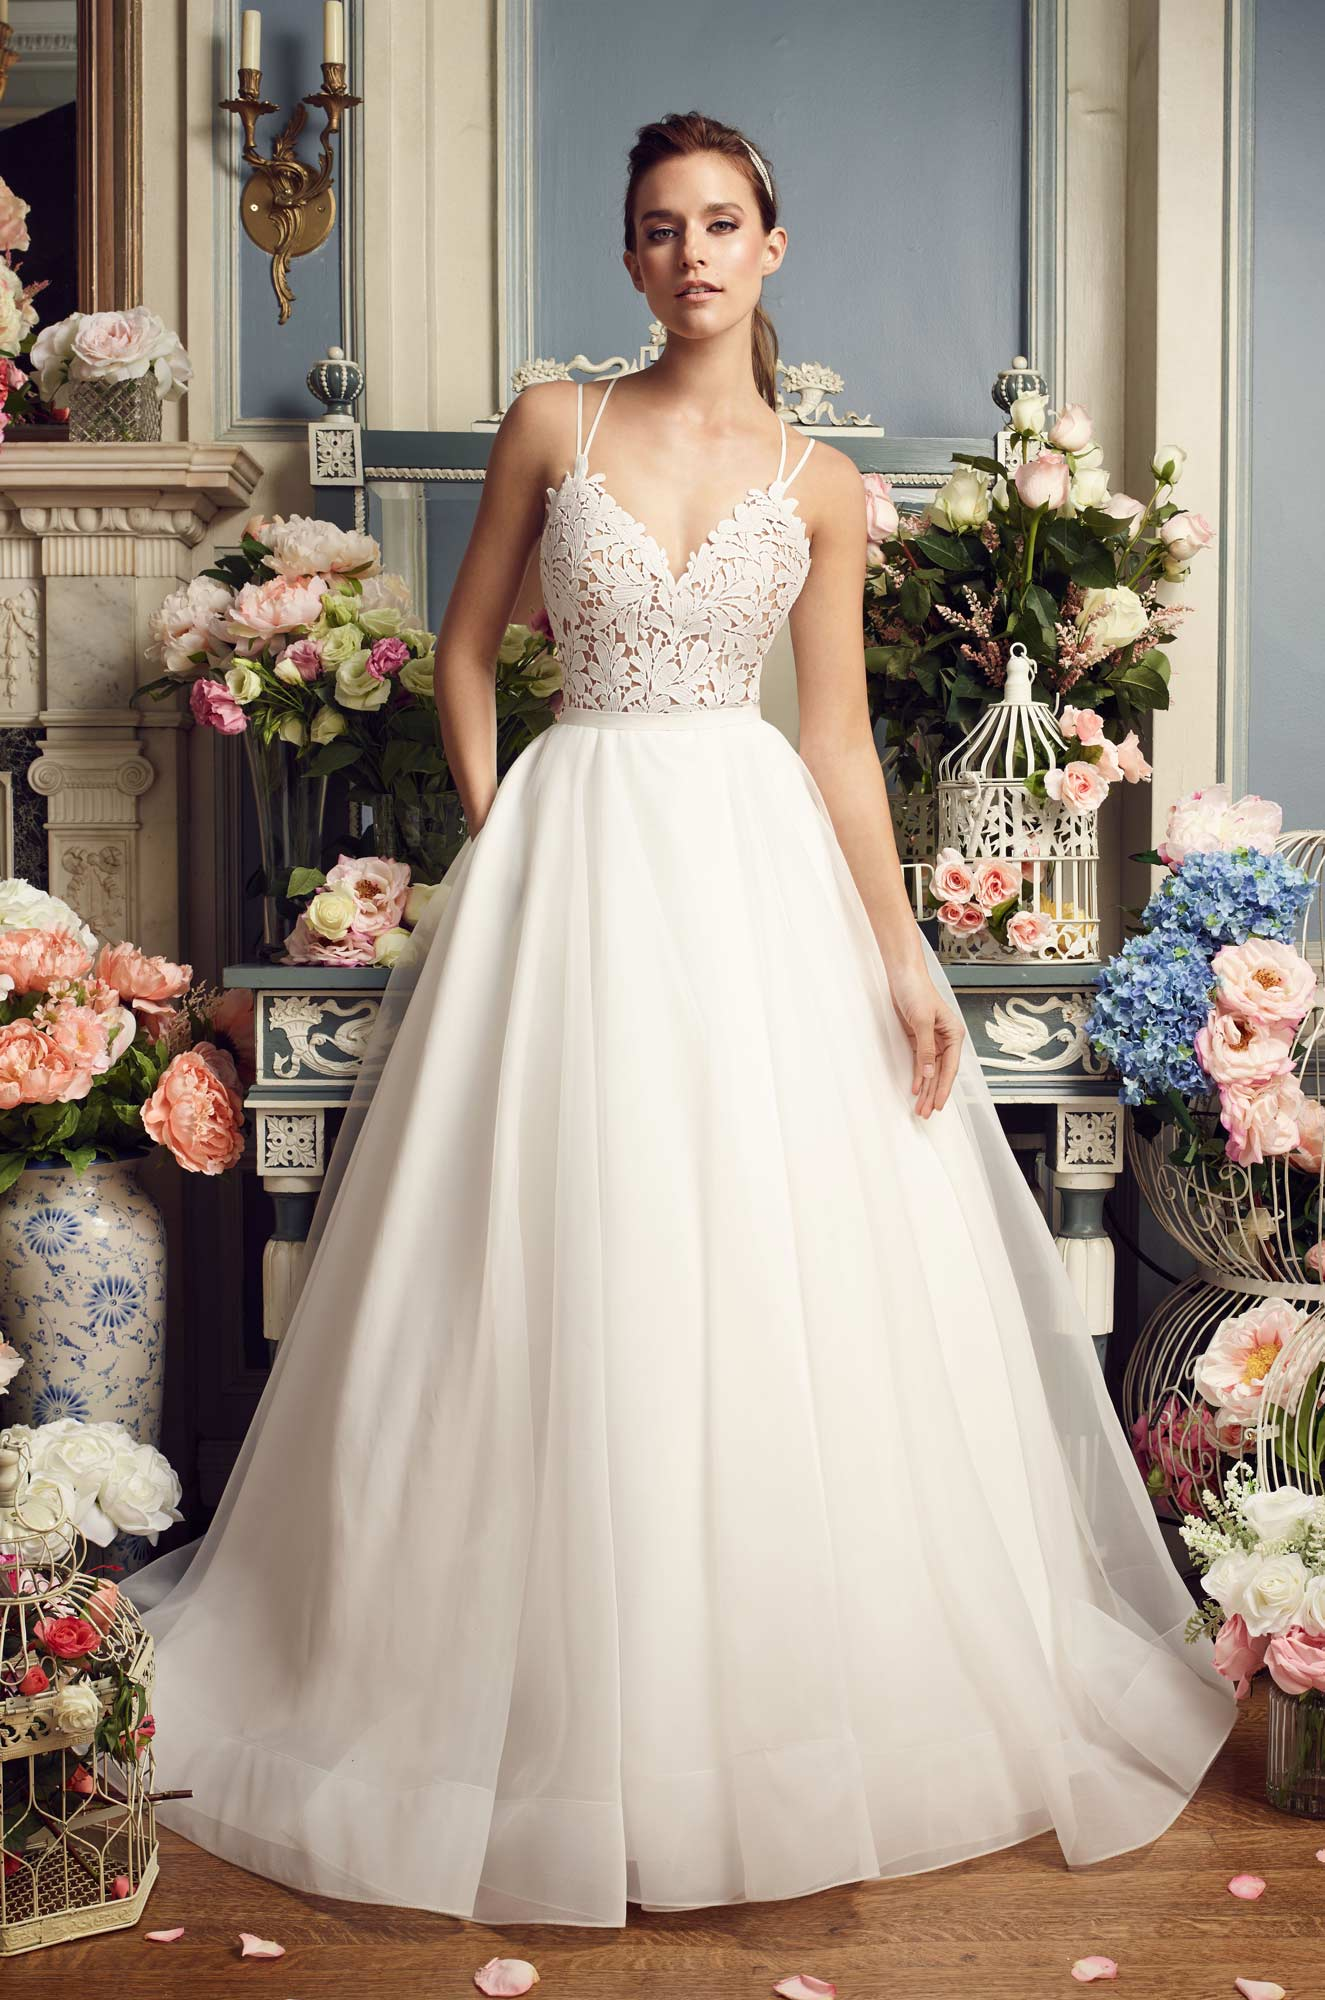 Skirt Pocket Wedding Dress - Style #2158 | Mikaella Bridal